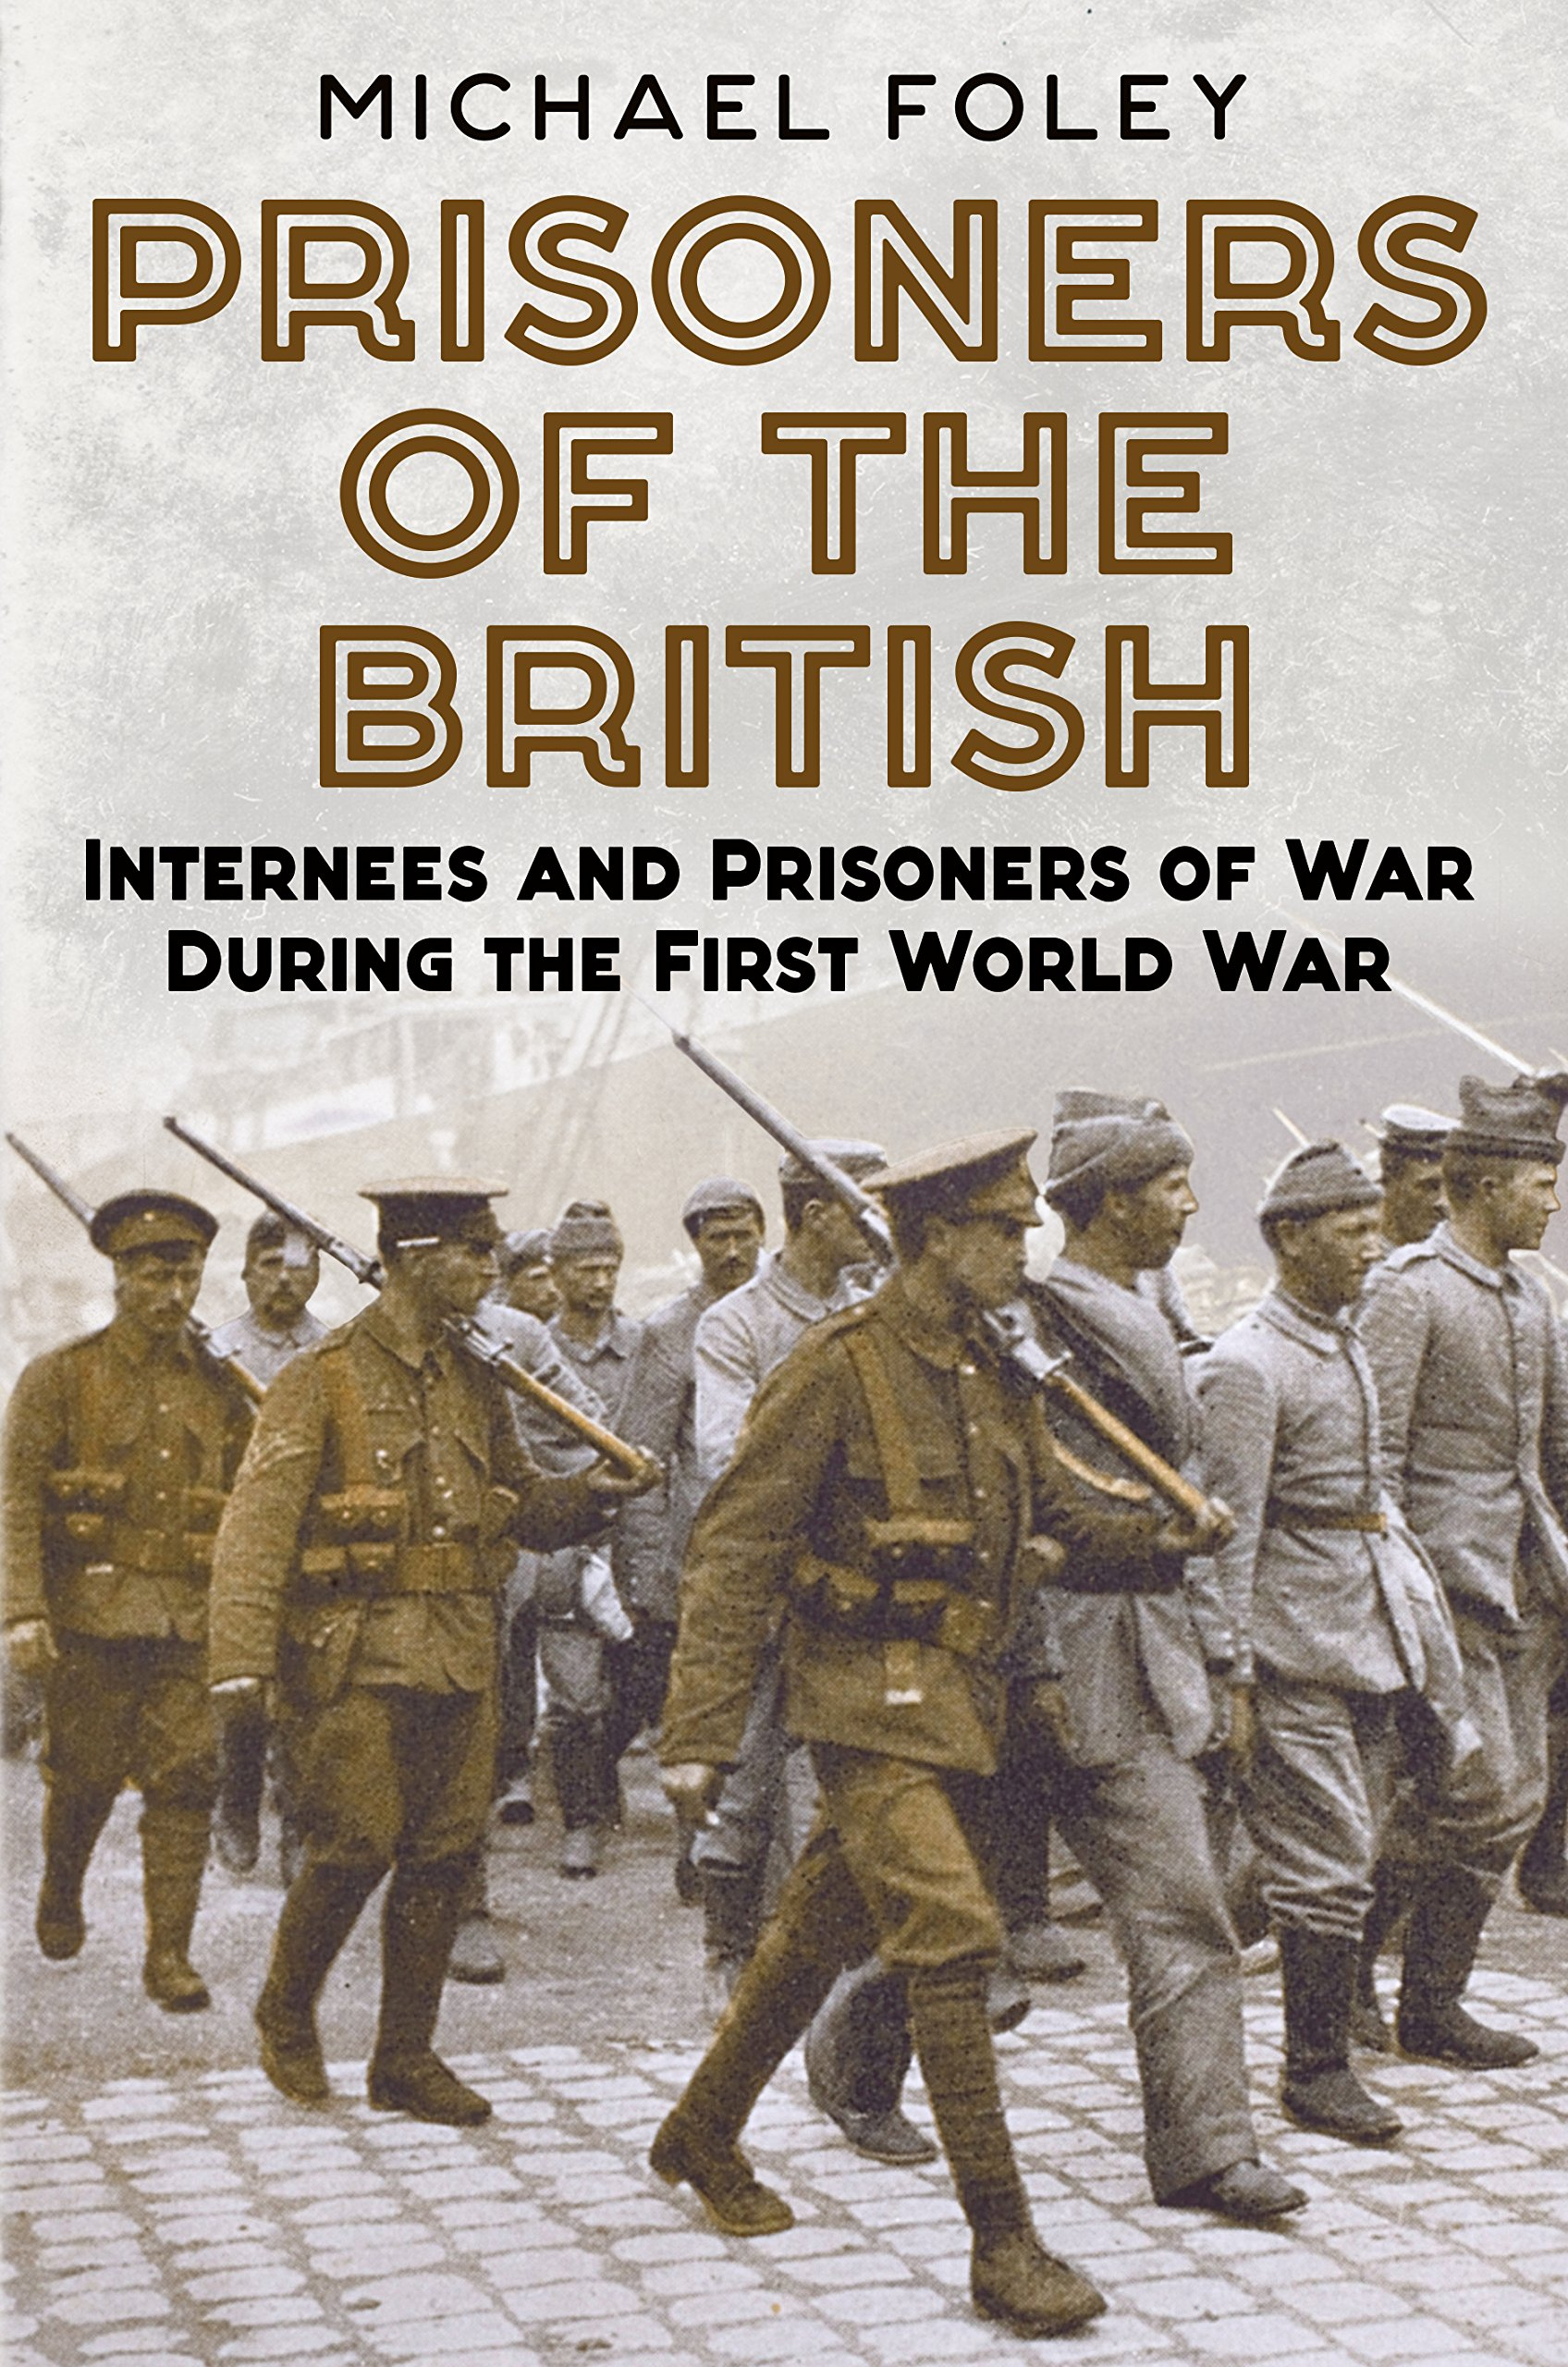 Read Online Prisoners of the British: Internees and Prisoners of War During the First World War pdf